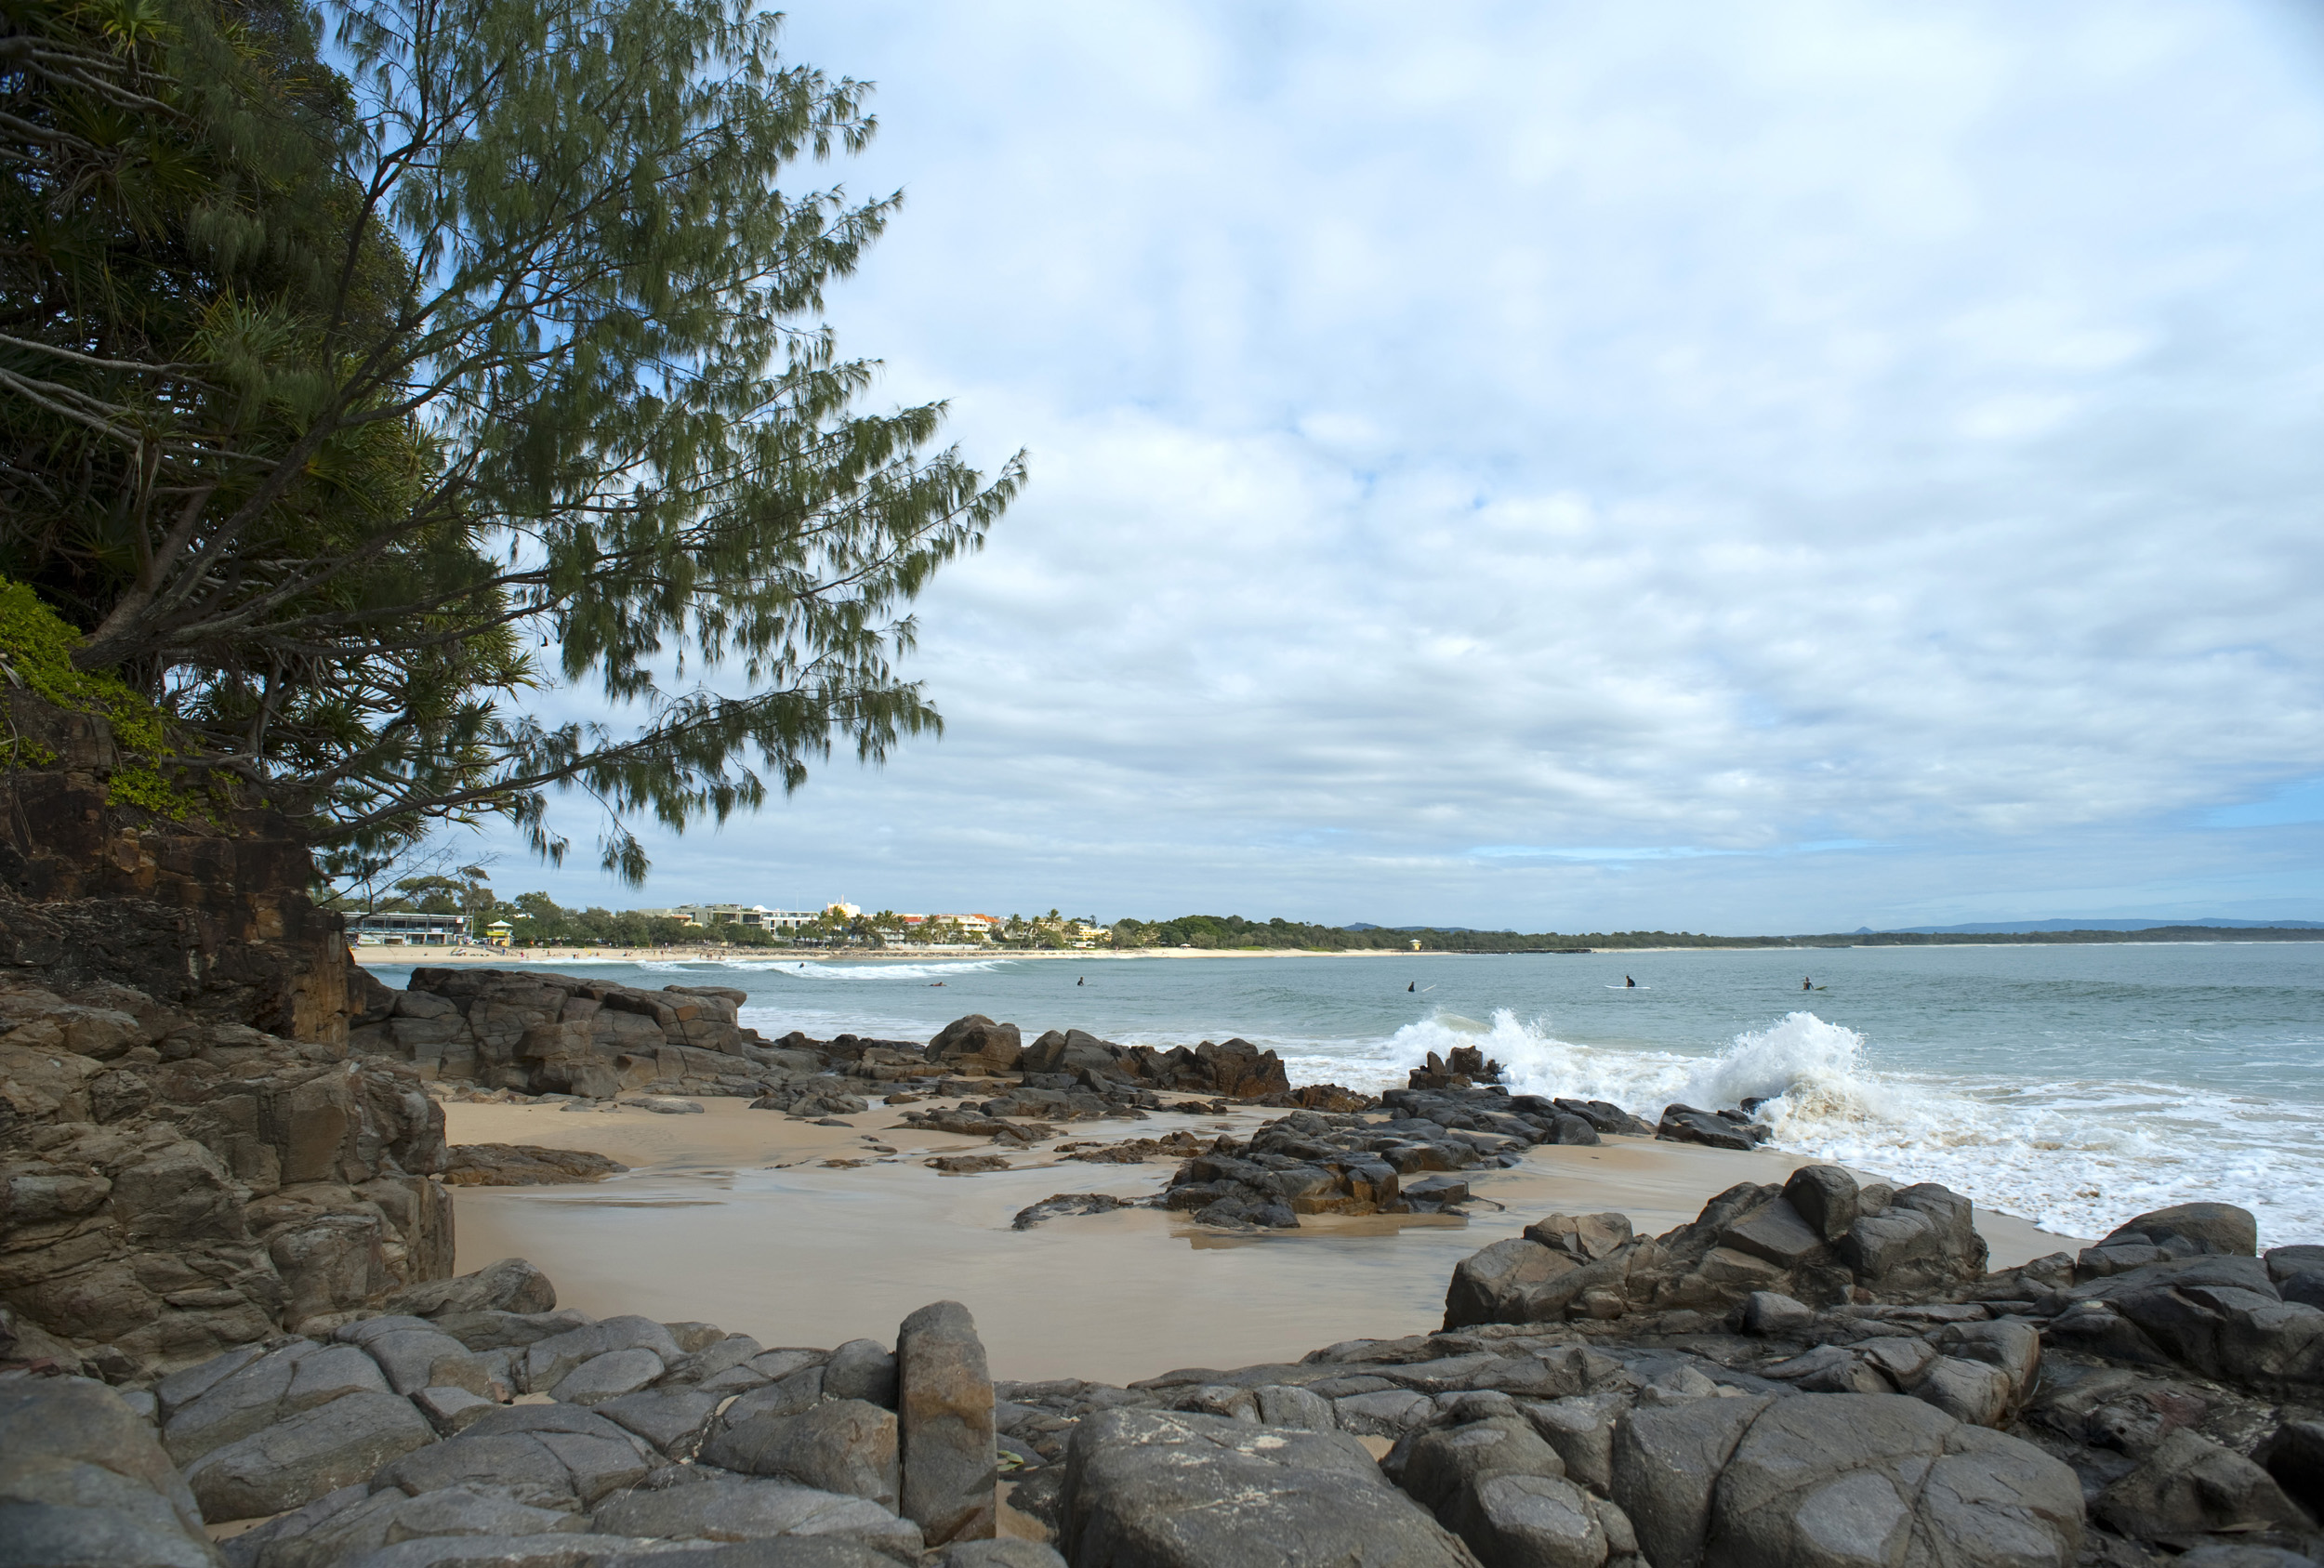 Noosa beach waterfront with a rocky shoreline and breaking waves on a cloudy day